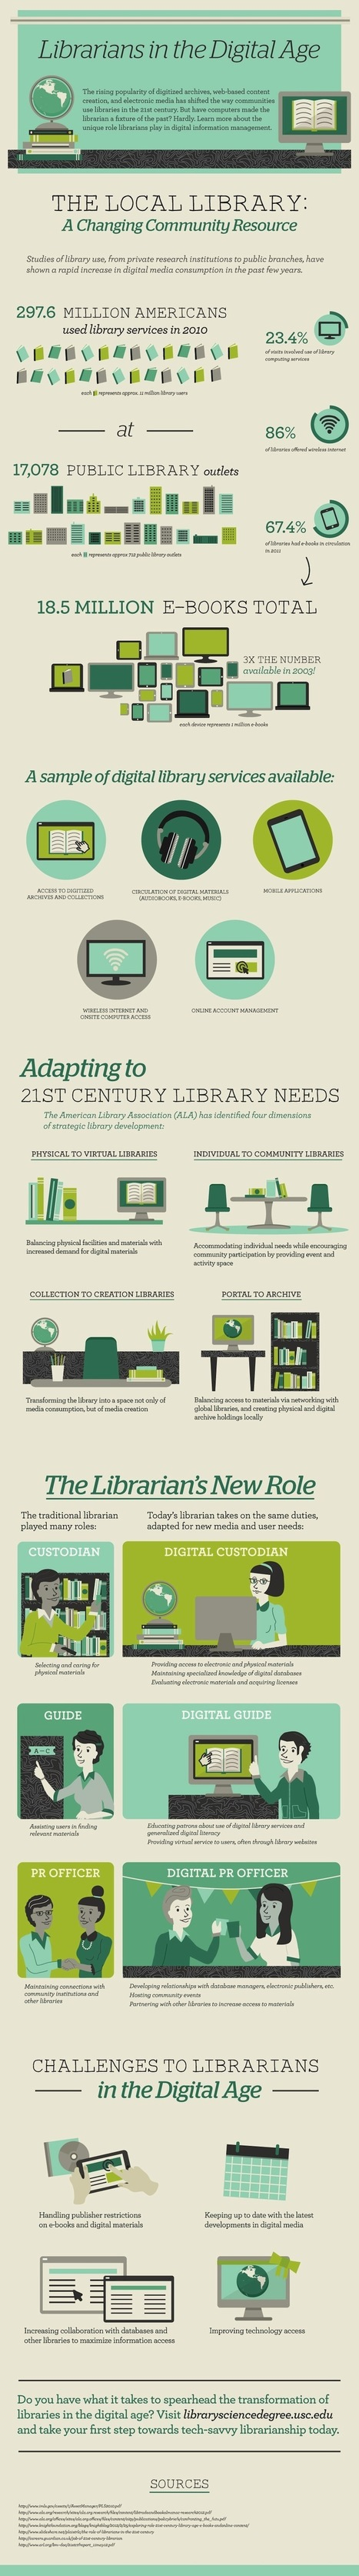 In digital age, librarians are needed more than ever [infographic] | Libraries & Librarians | Scoop.it